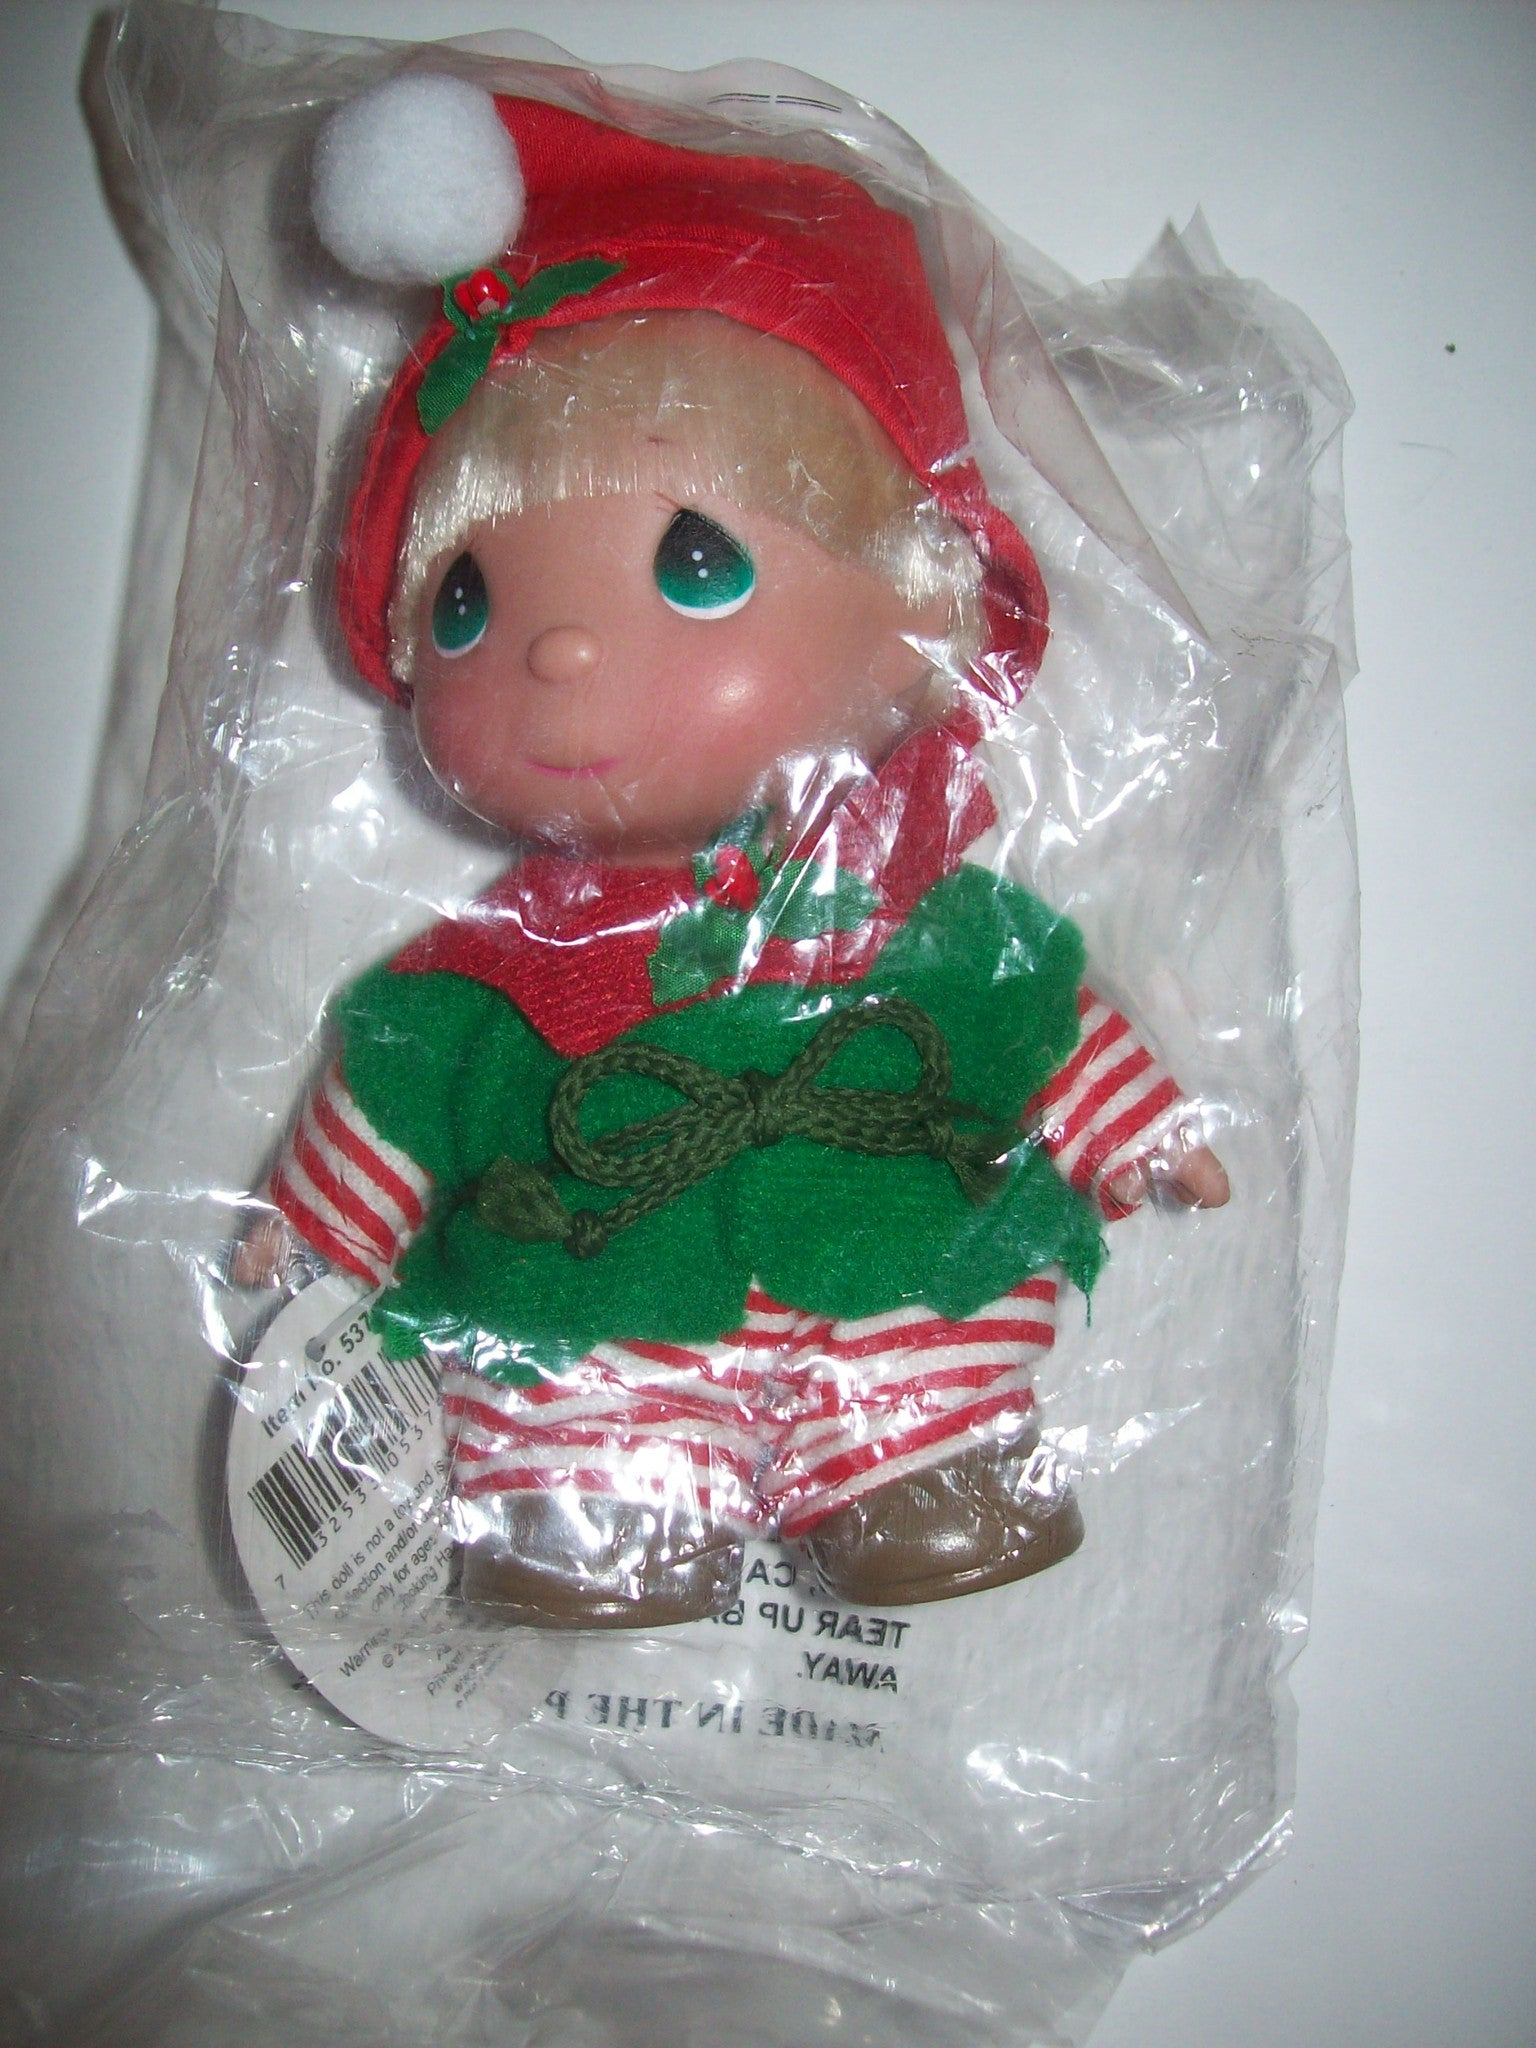 Precious Moments Mini Moments Tiny Toymaker Doll - We Got Character